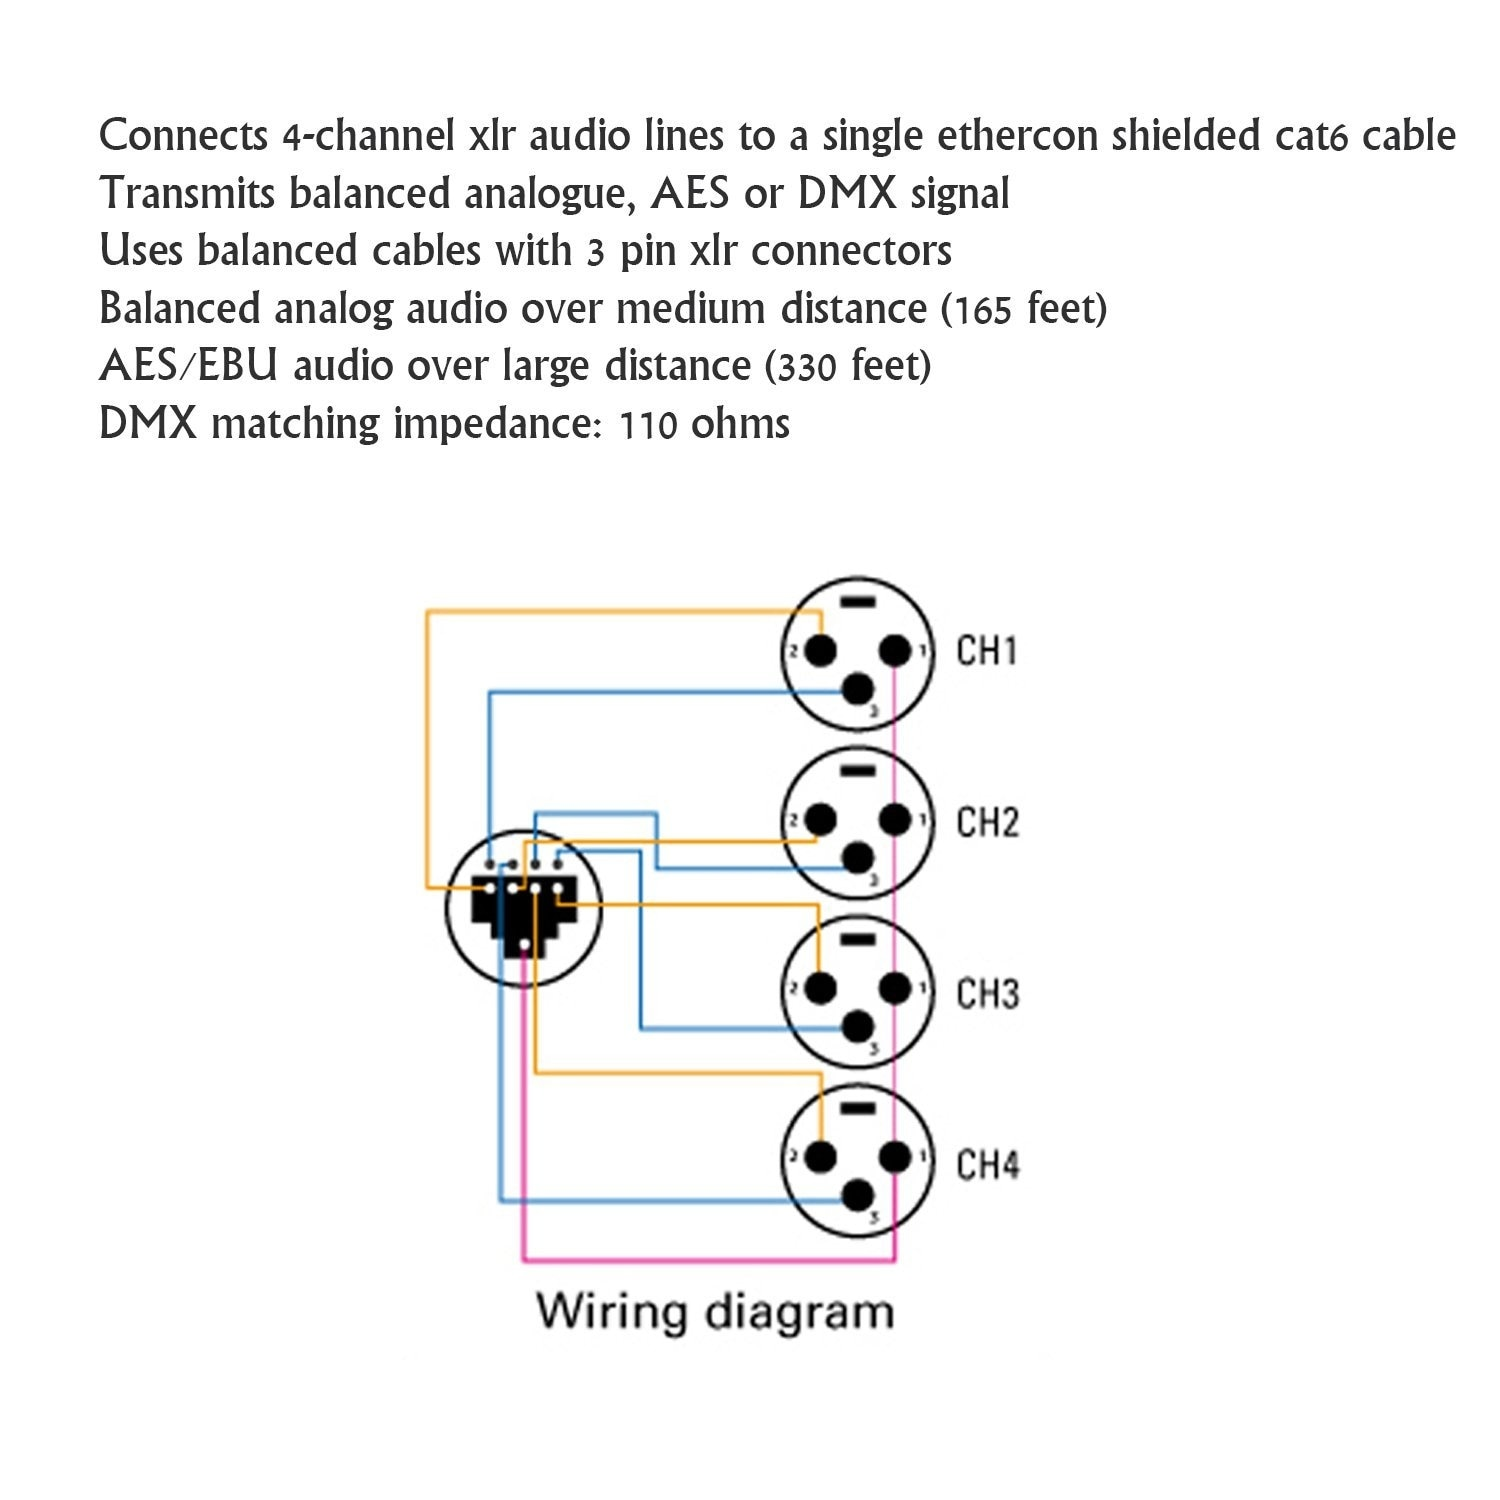 Rj45 Audio Wiring Diagrams Cat6 Rj11 Diagram Shop Lyxpro 4 Channel Xlr Male To Ethercon Free Shipping On Rh Overstock Com Pdf B